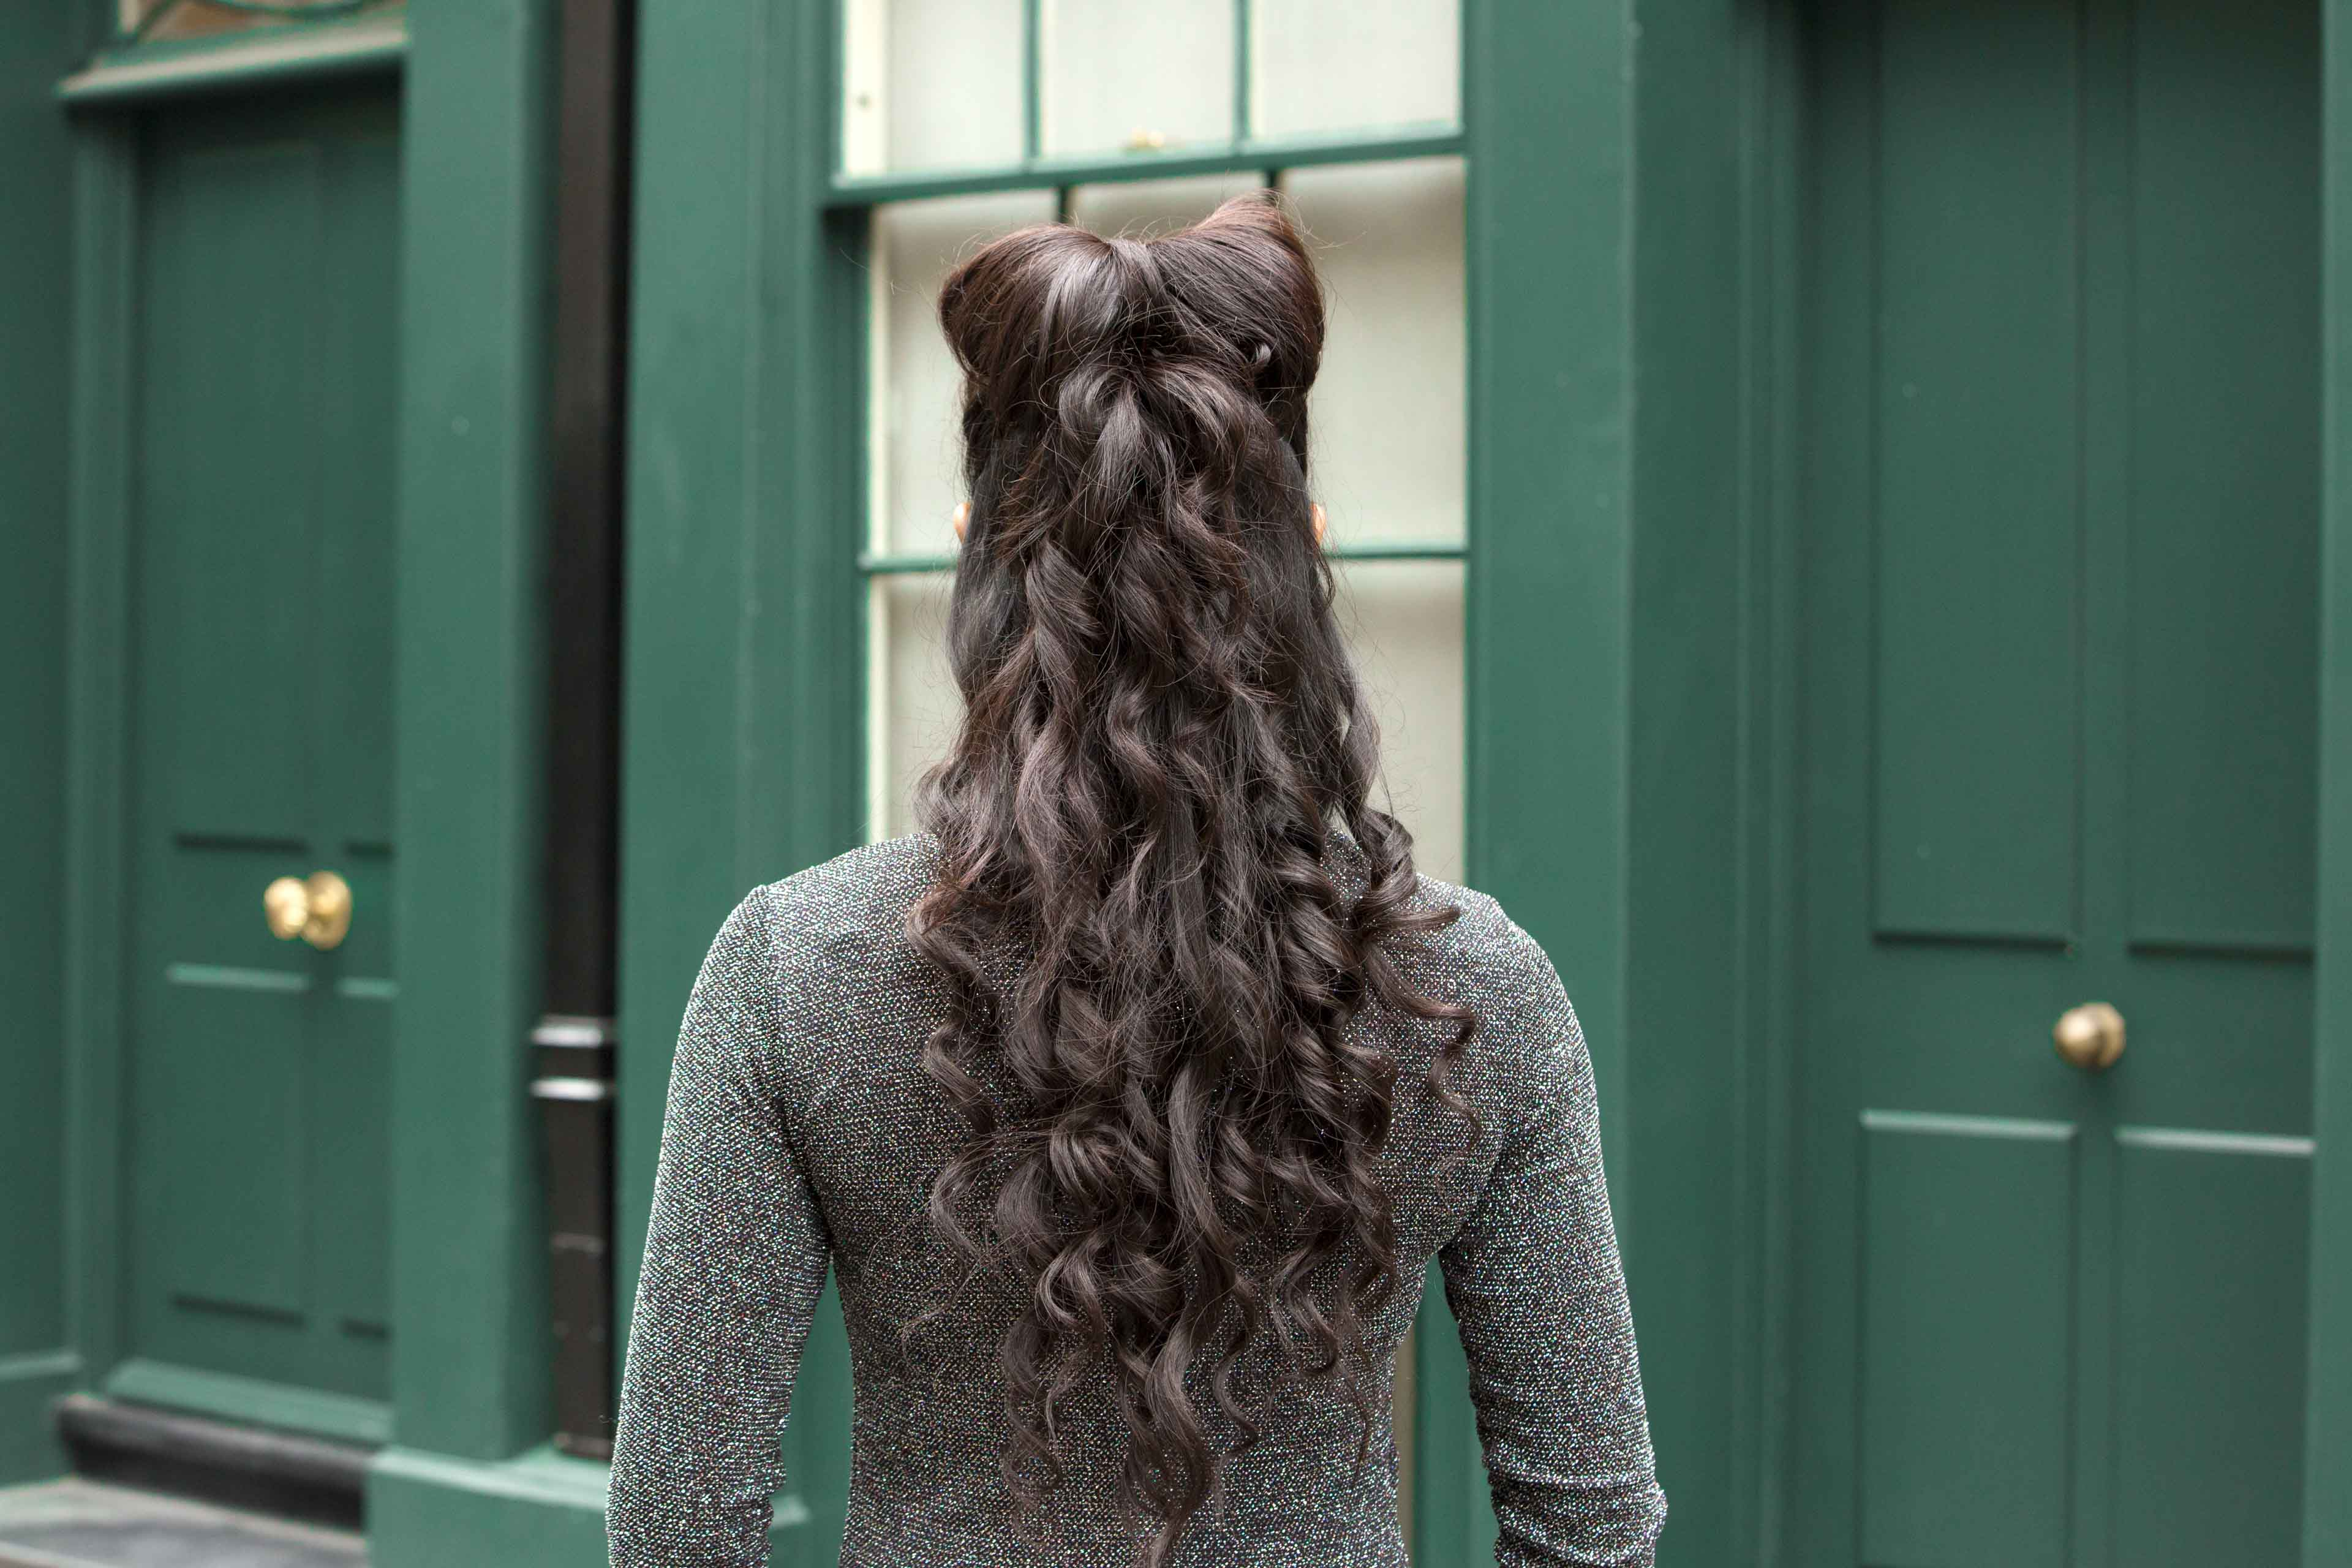 Christmas hairstyles: Woman with very long curly brown hair styled in a half-up, half-down bow wearing a grey knitted top.